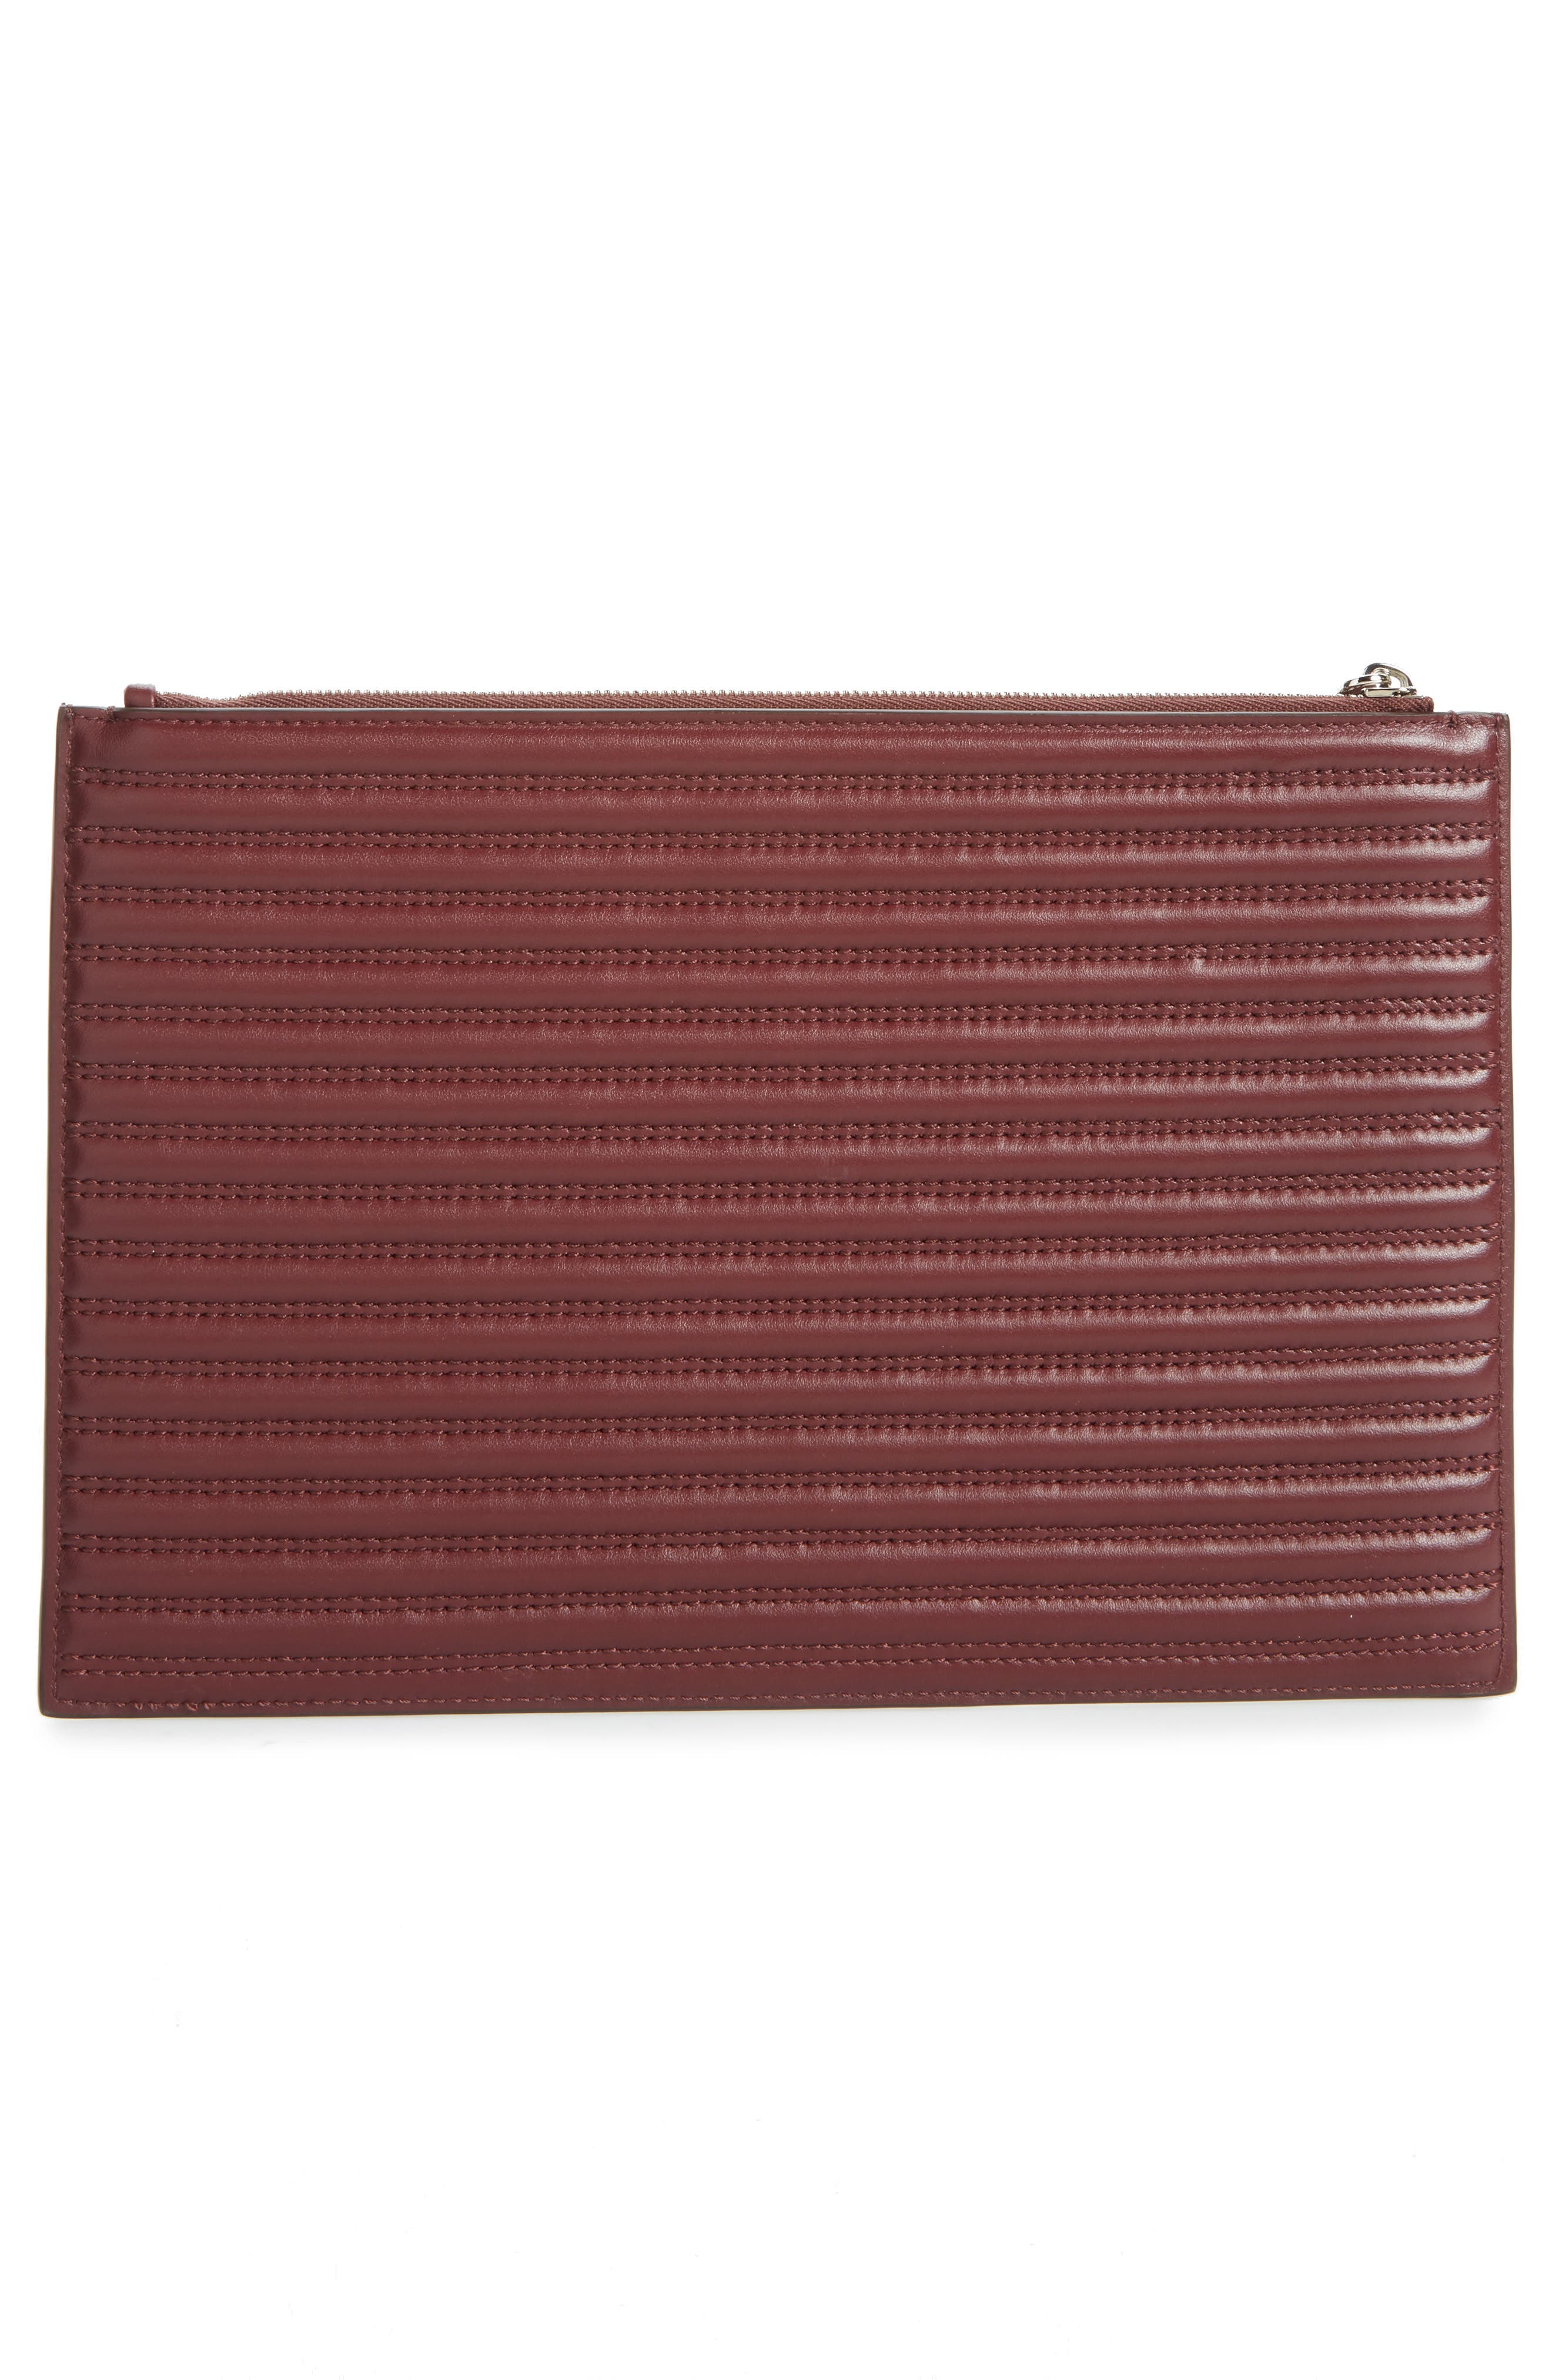 Antigona Quilted Leather Pouch,                             Alternate thumbnail 3, color,                             642